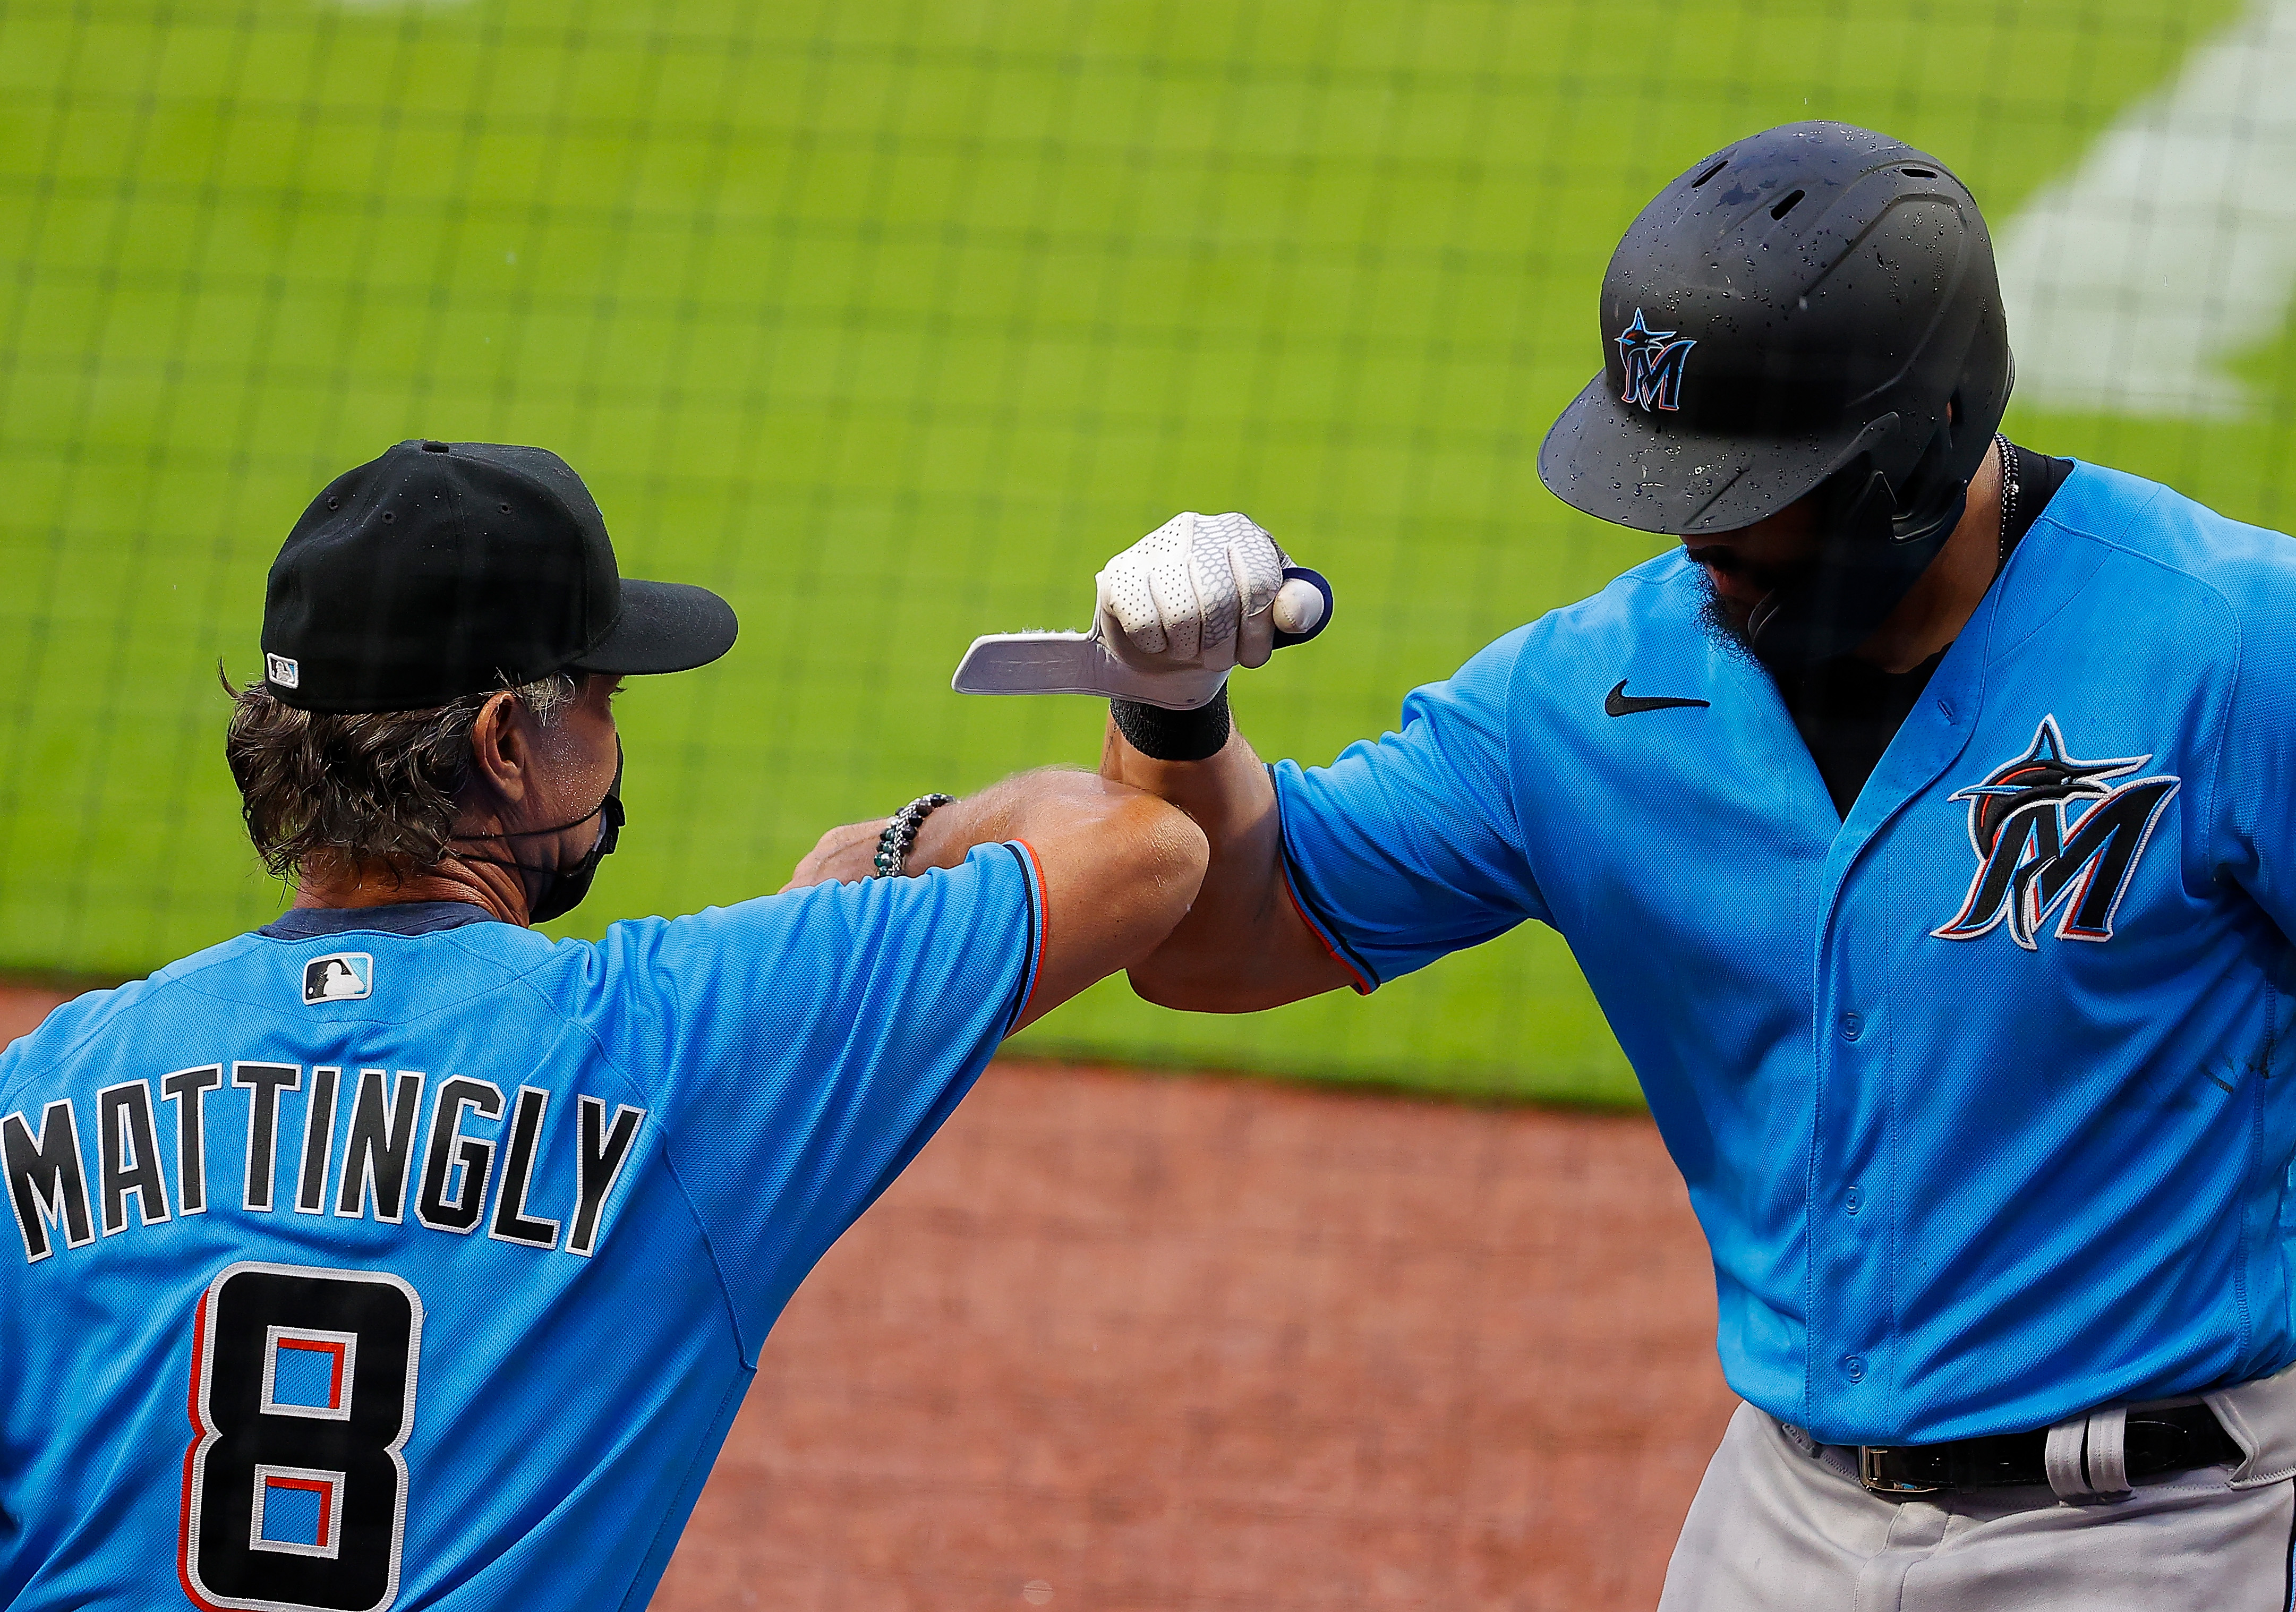 Jorge Alfaro #38 of the Miami Marlins reacts with manager Don Mattingly #8 after hitting a solo homer in the third inning against the Atlanta Braves during an exhibition game at Truist Park on July 21, 2020 in Atlanta, Georgia.